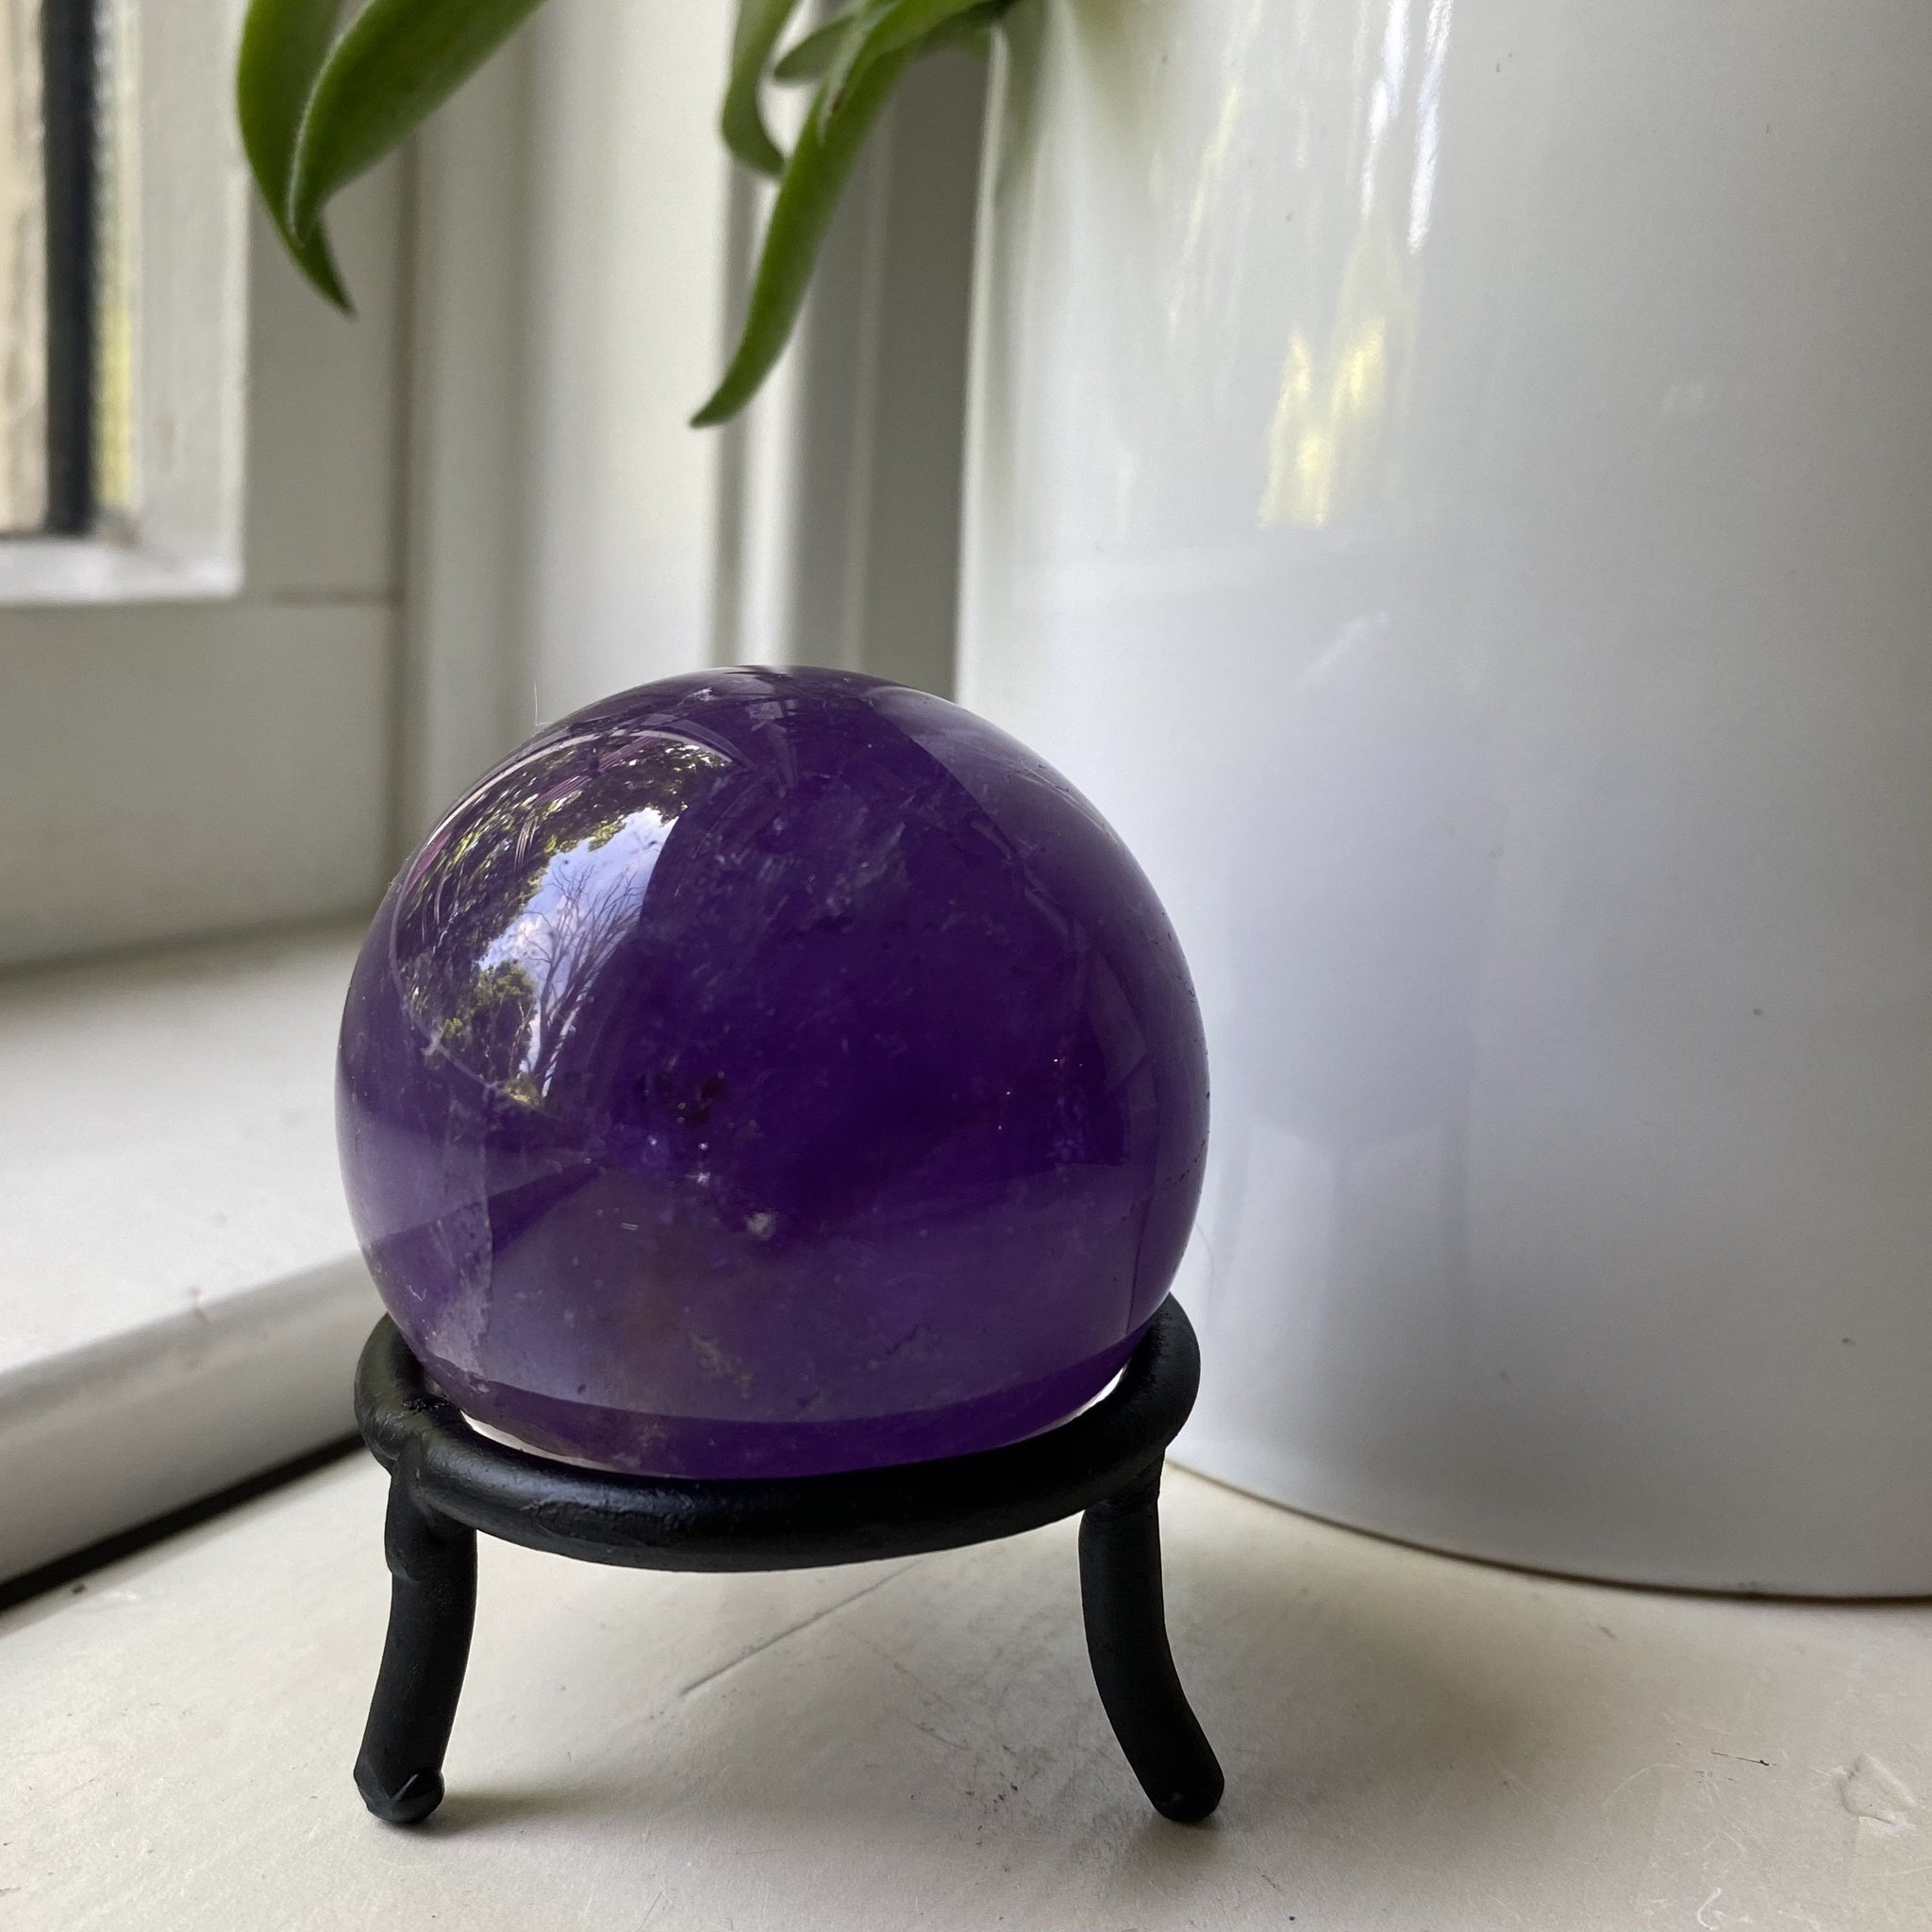 polished amethyst crystal sphere with stand